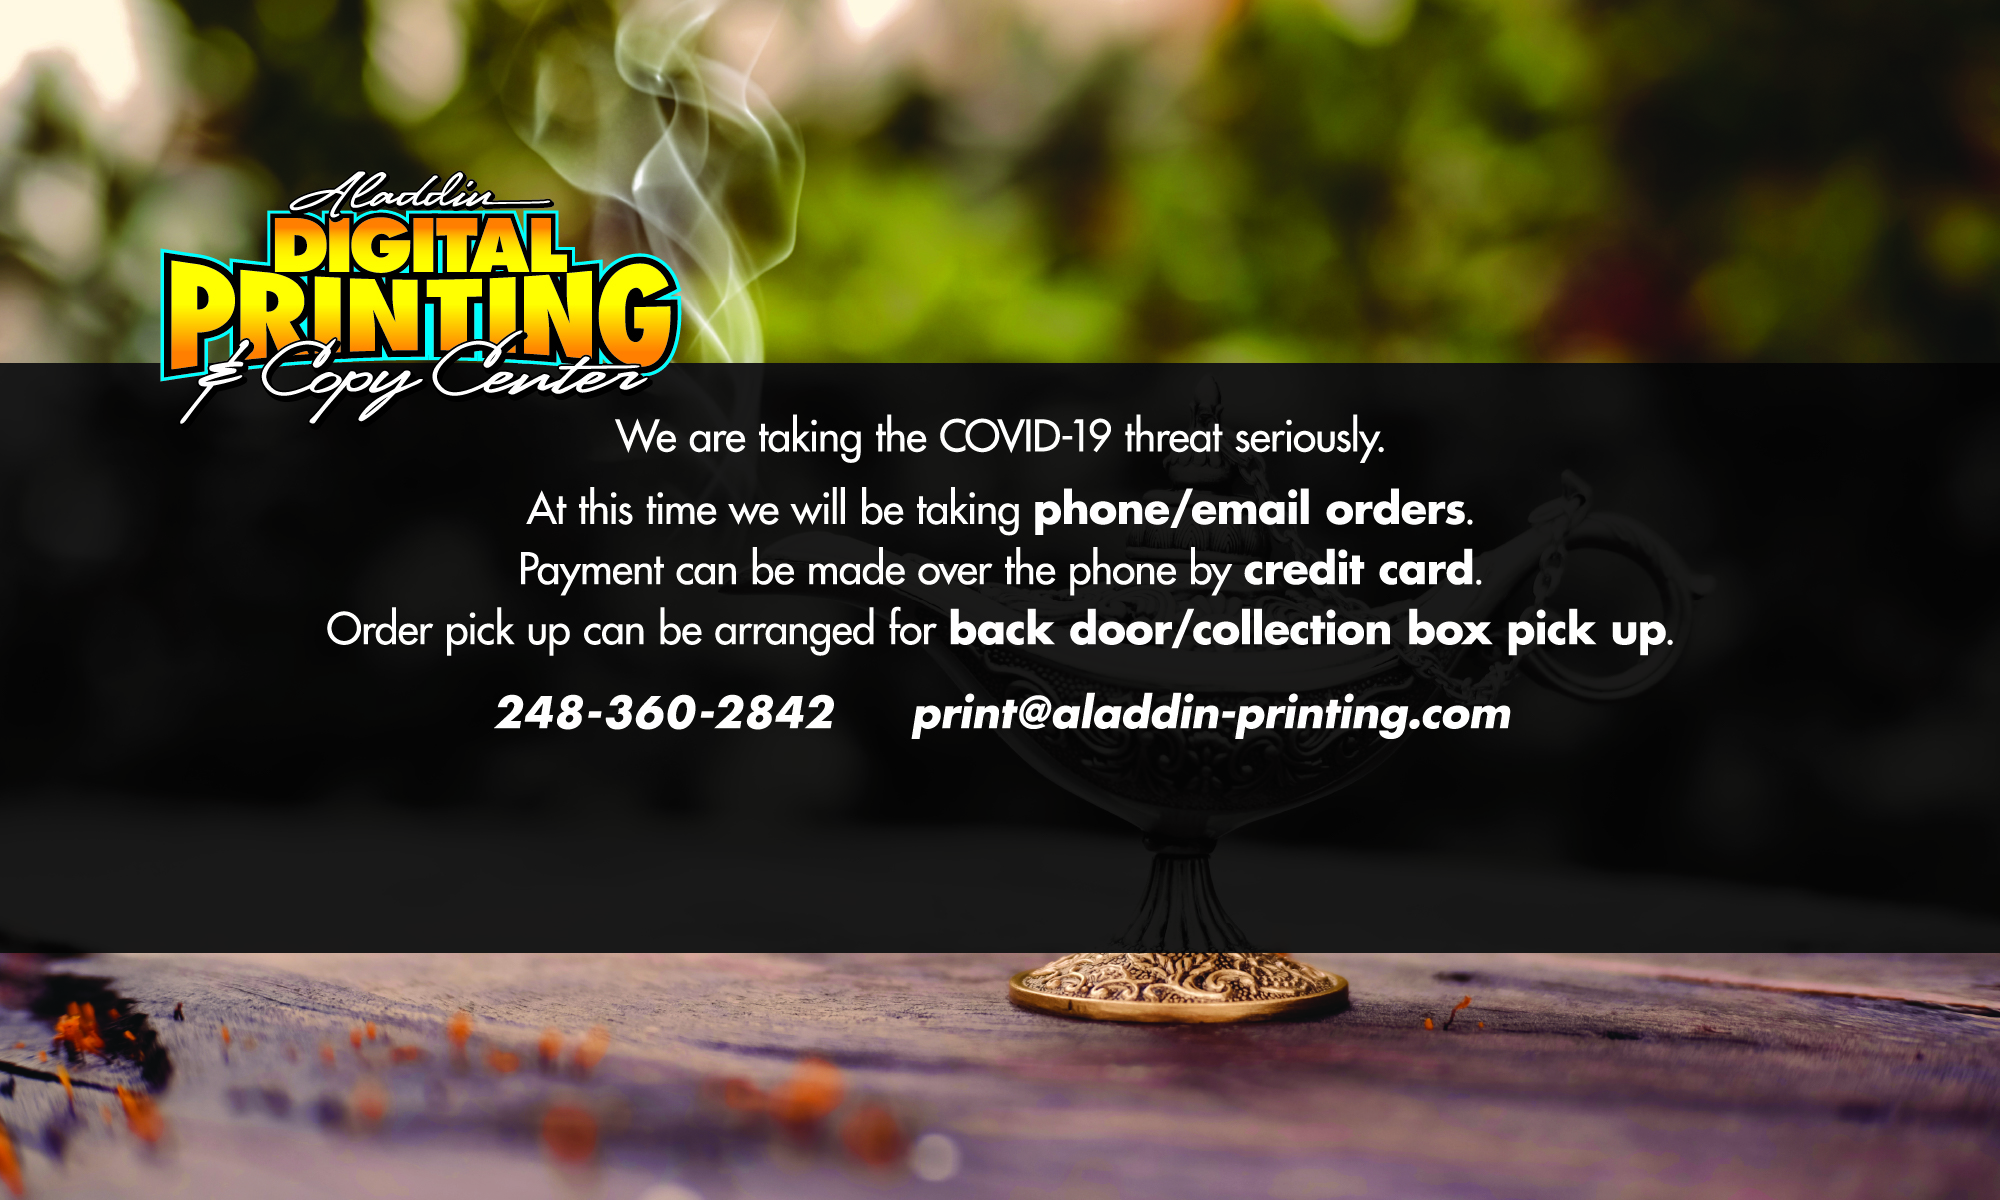 Digital Printing & Copy Center